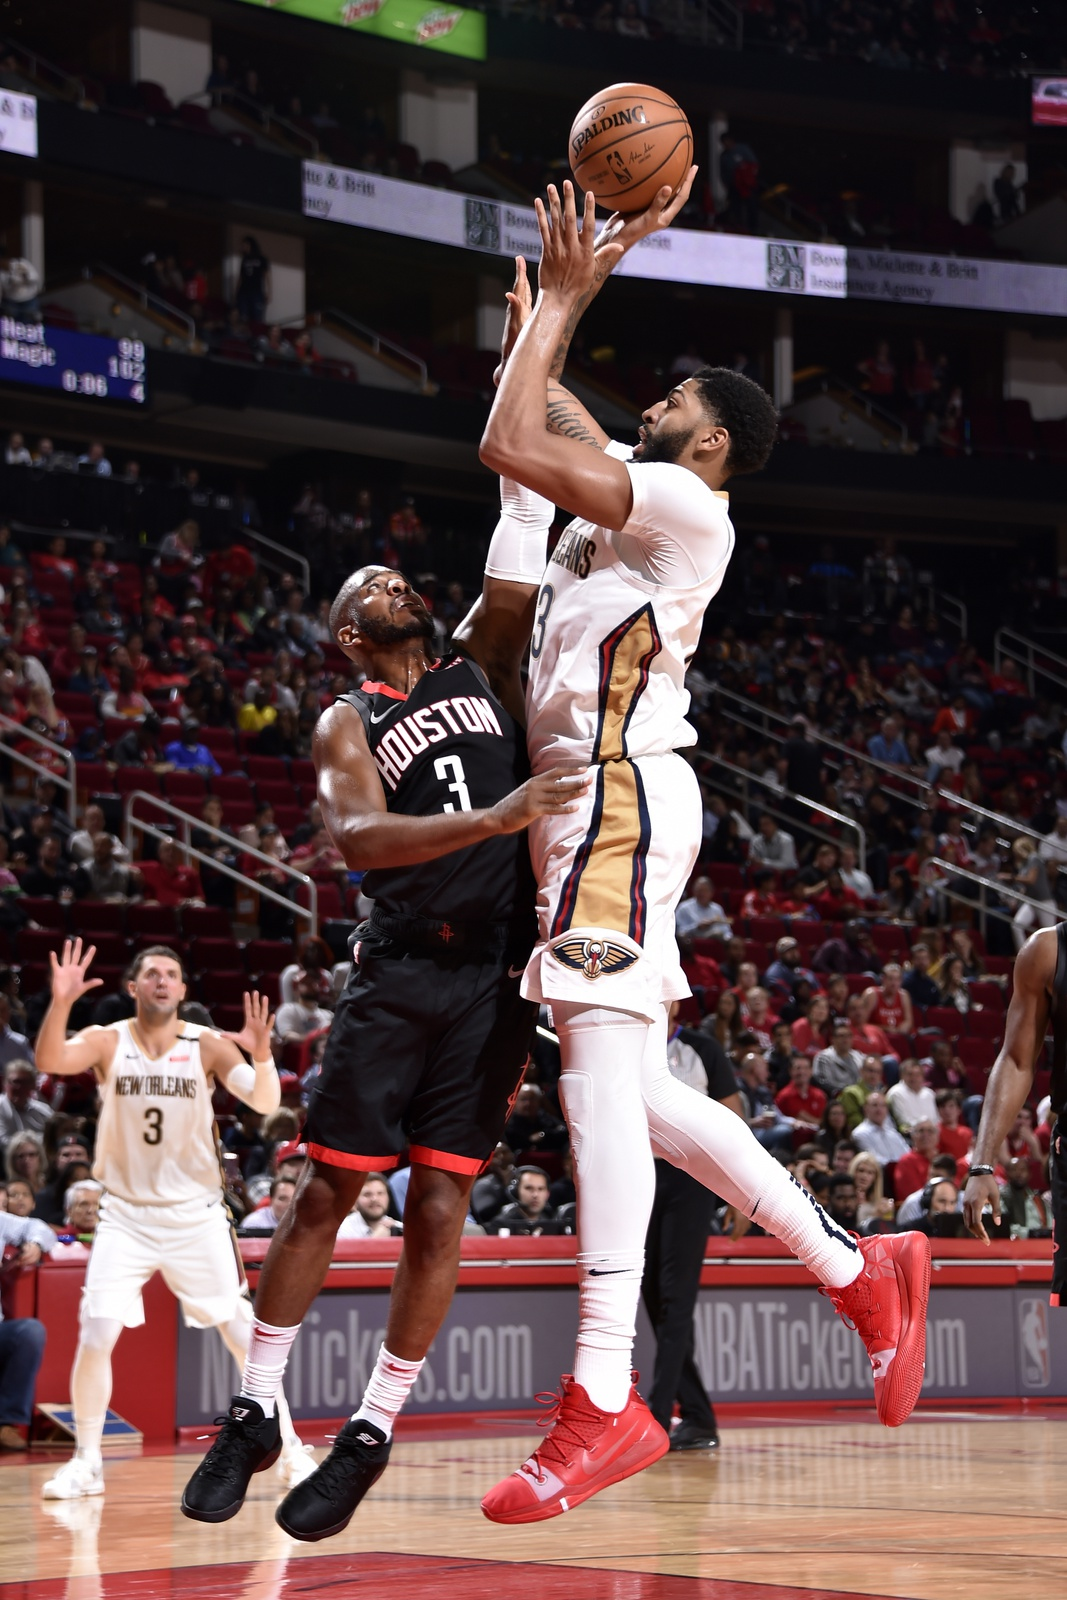 Anthony Davis #23 of the New Orleans Pelicans shoots the ball against the Houston Rockets during a game on October 17, 2018 at Toyota Center, in Houston, Texas.